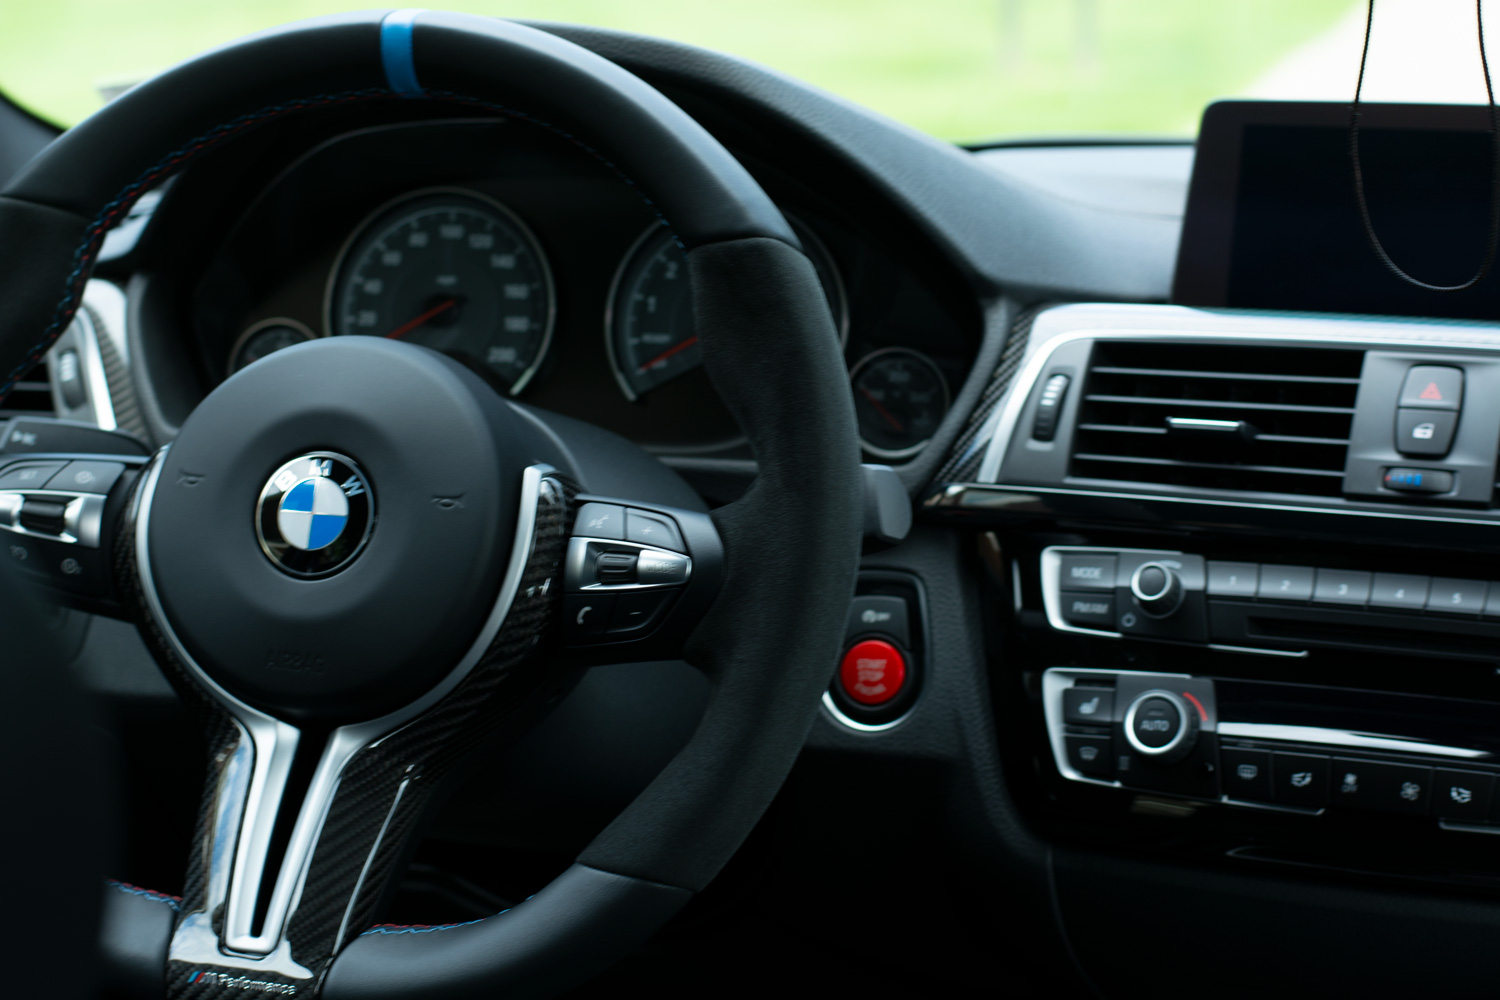 BMW F80 Steering Wheel